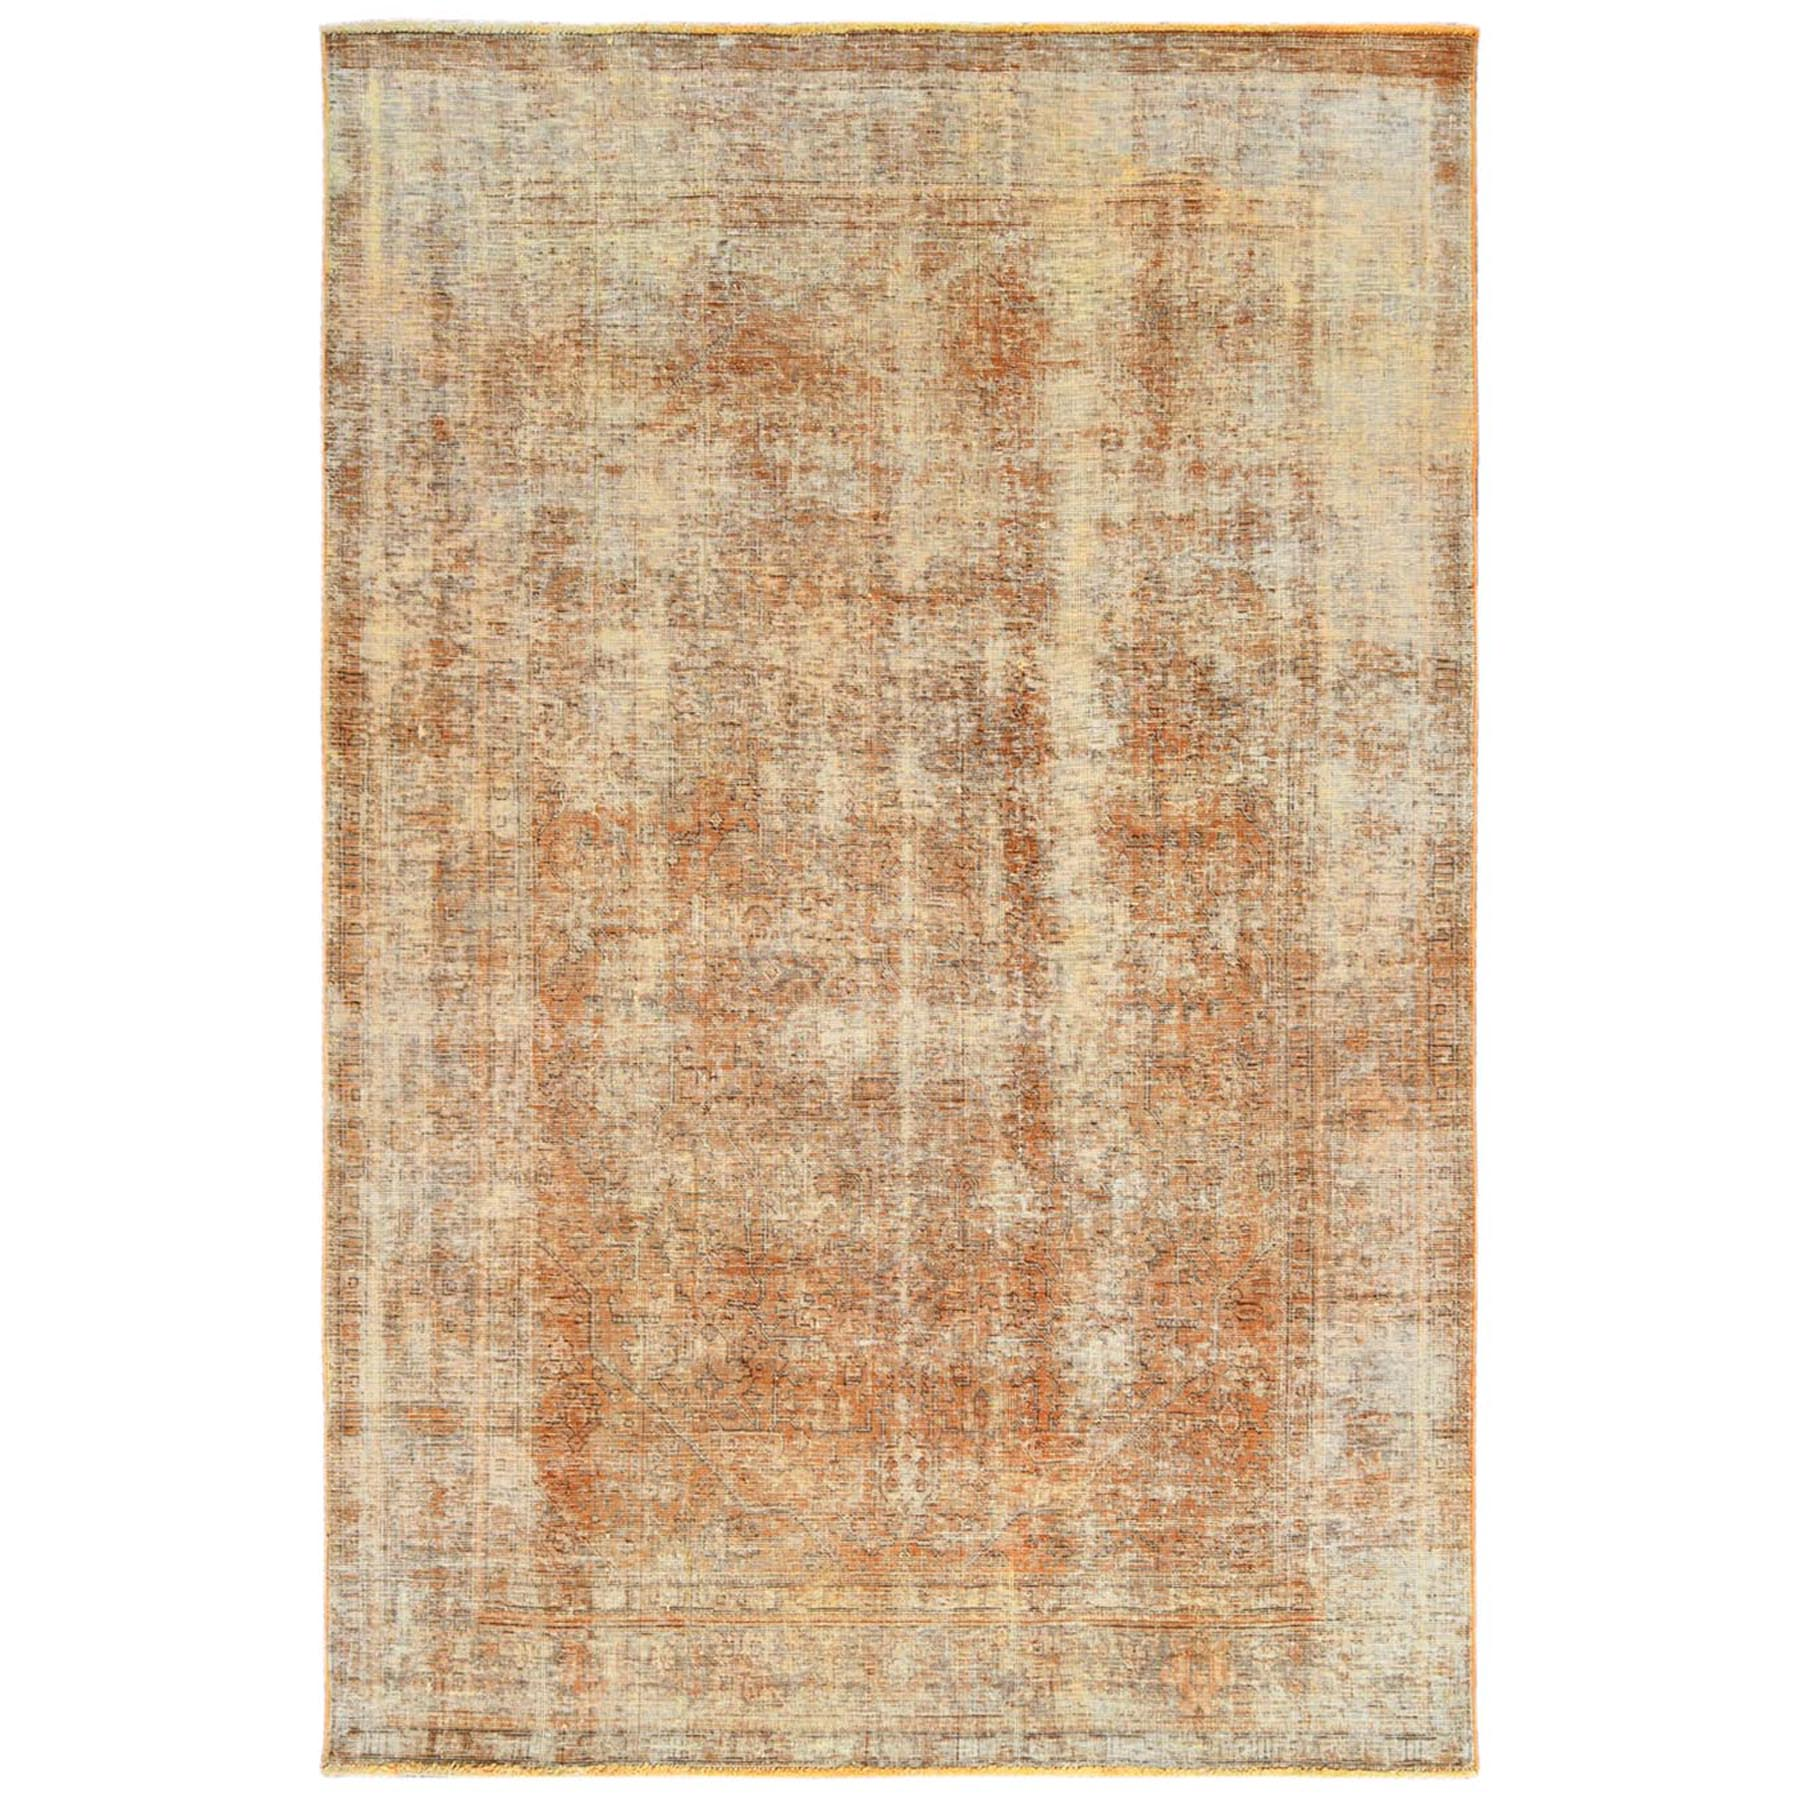 Fetneh Collection And Vintage Overdyed Collection Hand Knotted Orange Rug No: 1122492